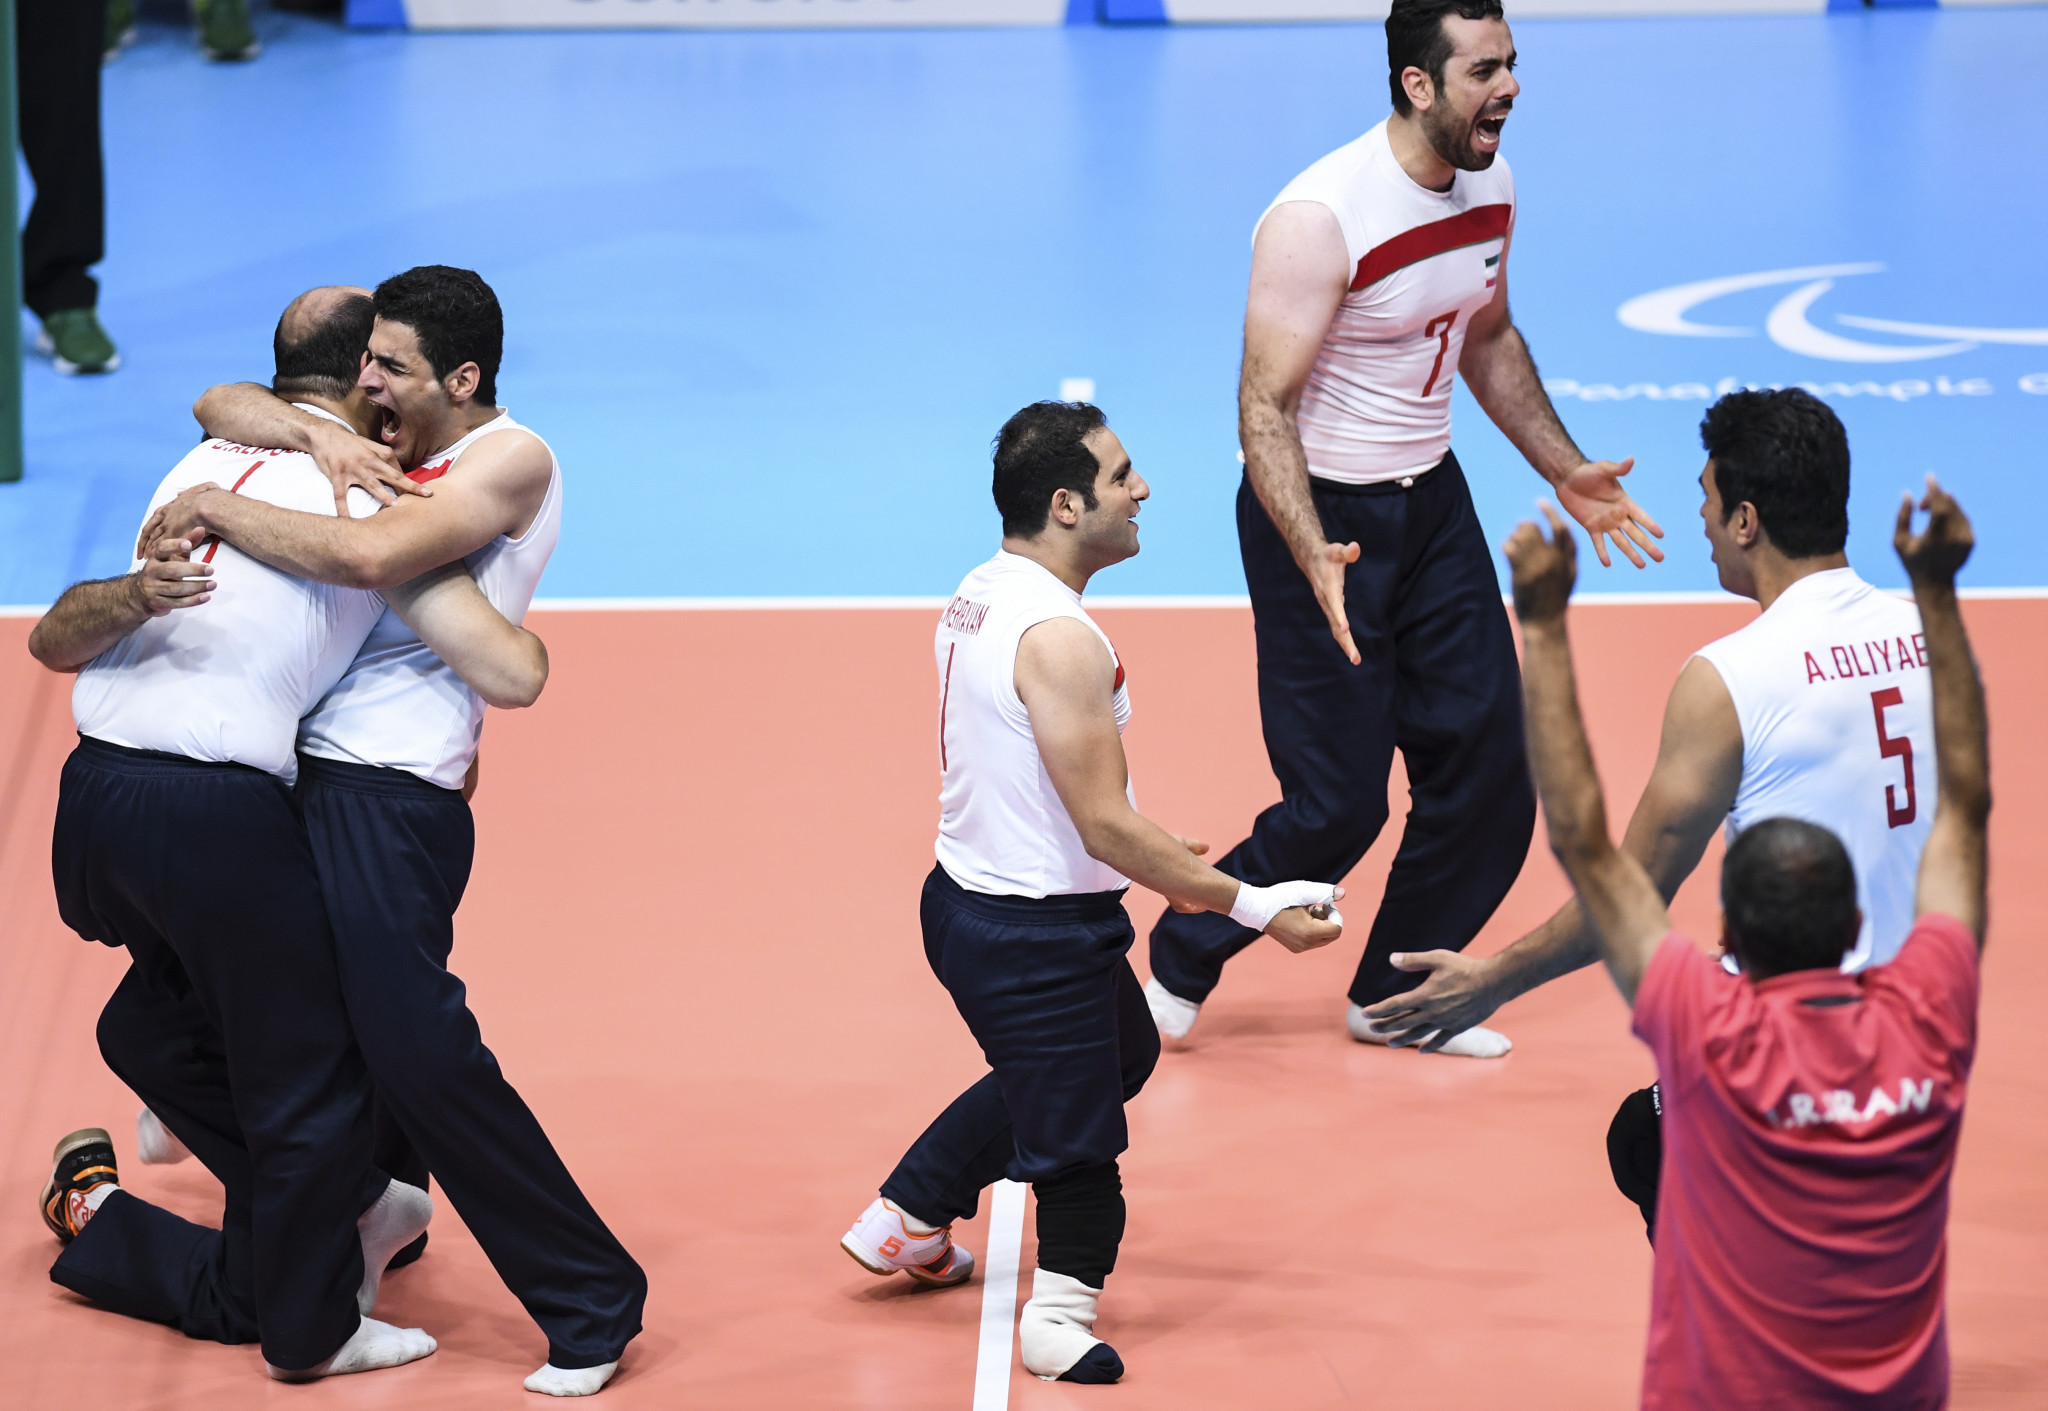 Iran took the men's title in the Sitting Volleyball World Championships earlier this month ©Getty Images